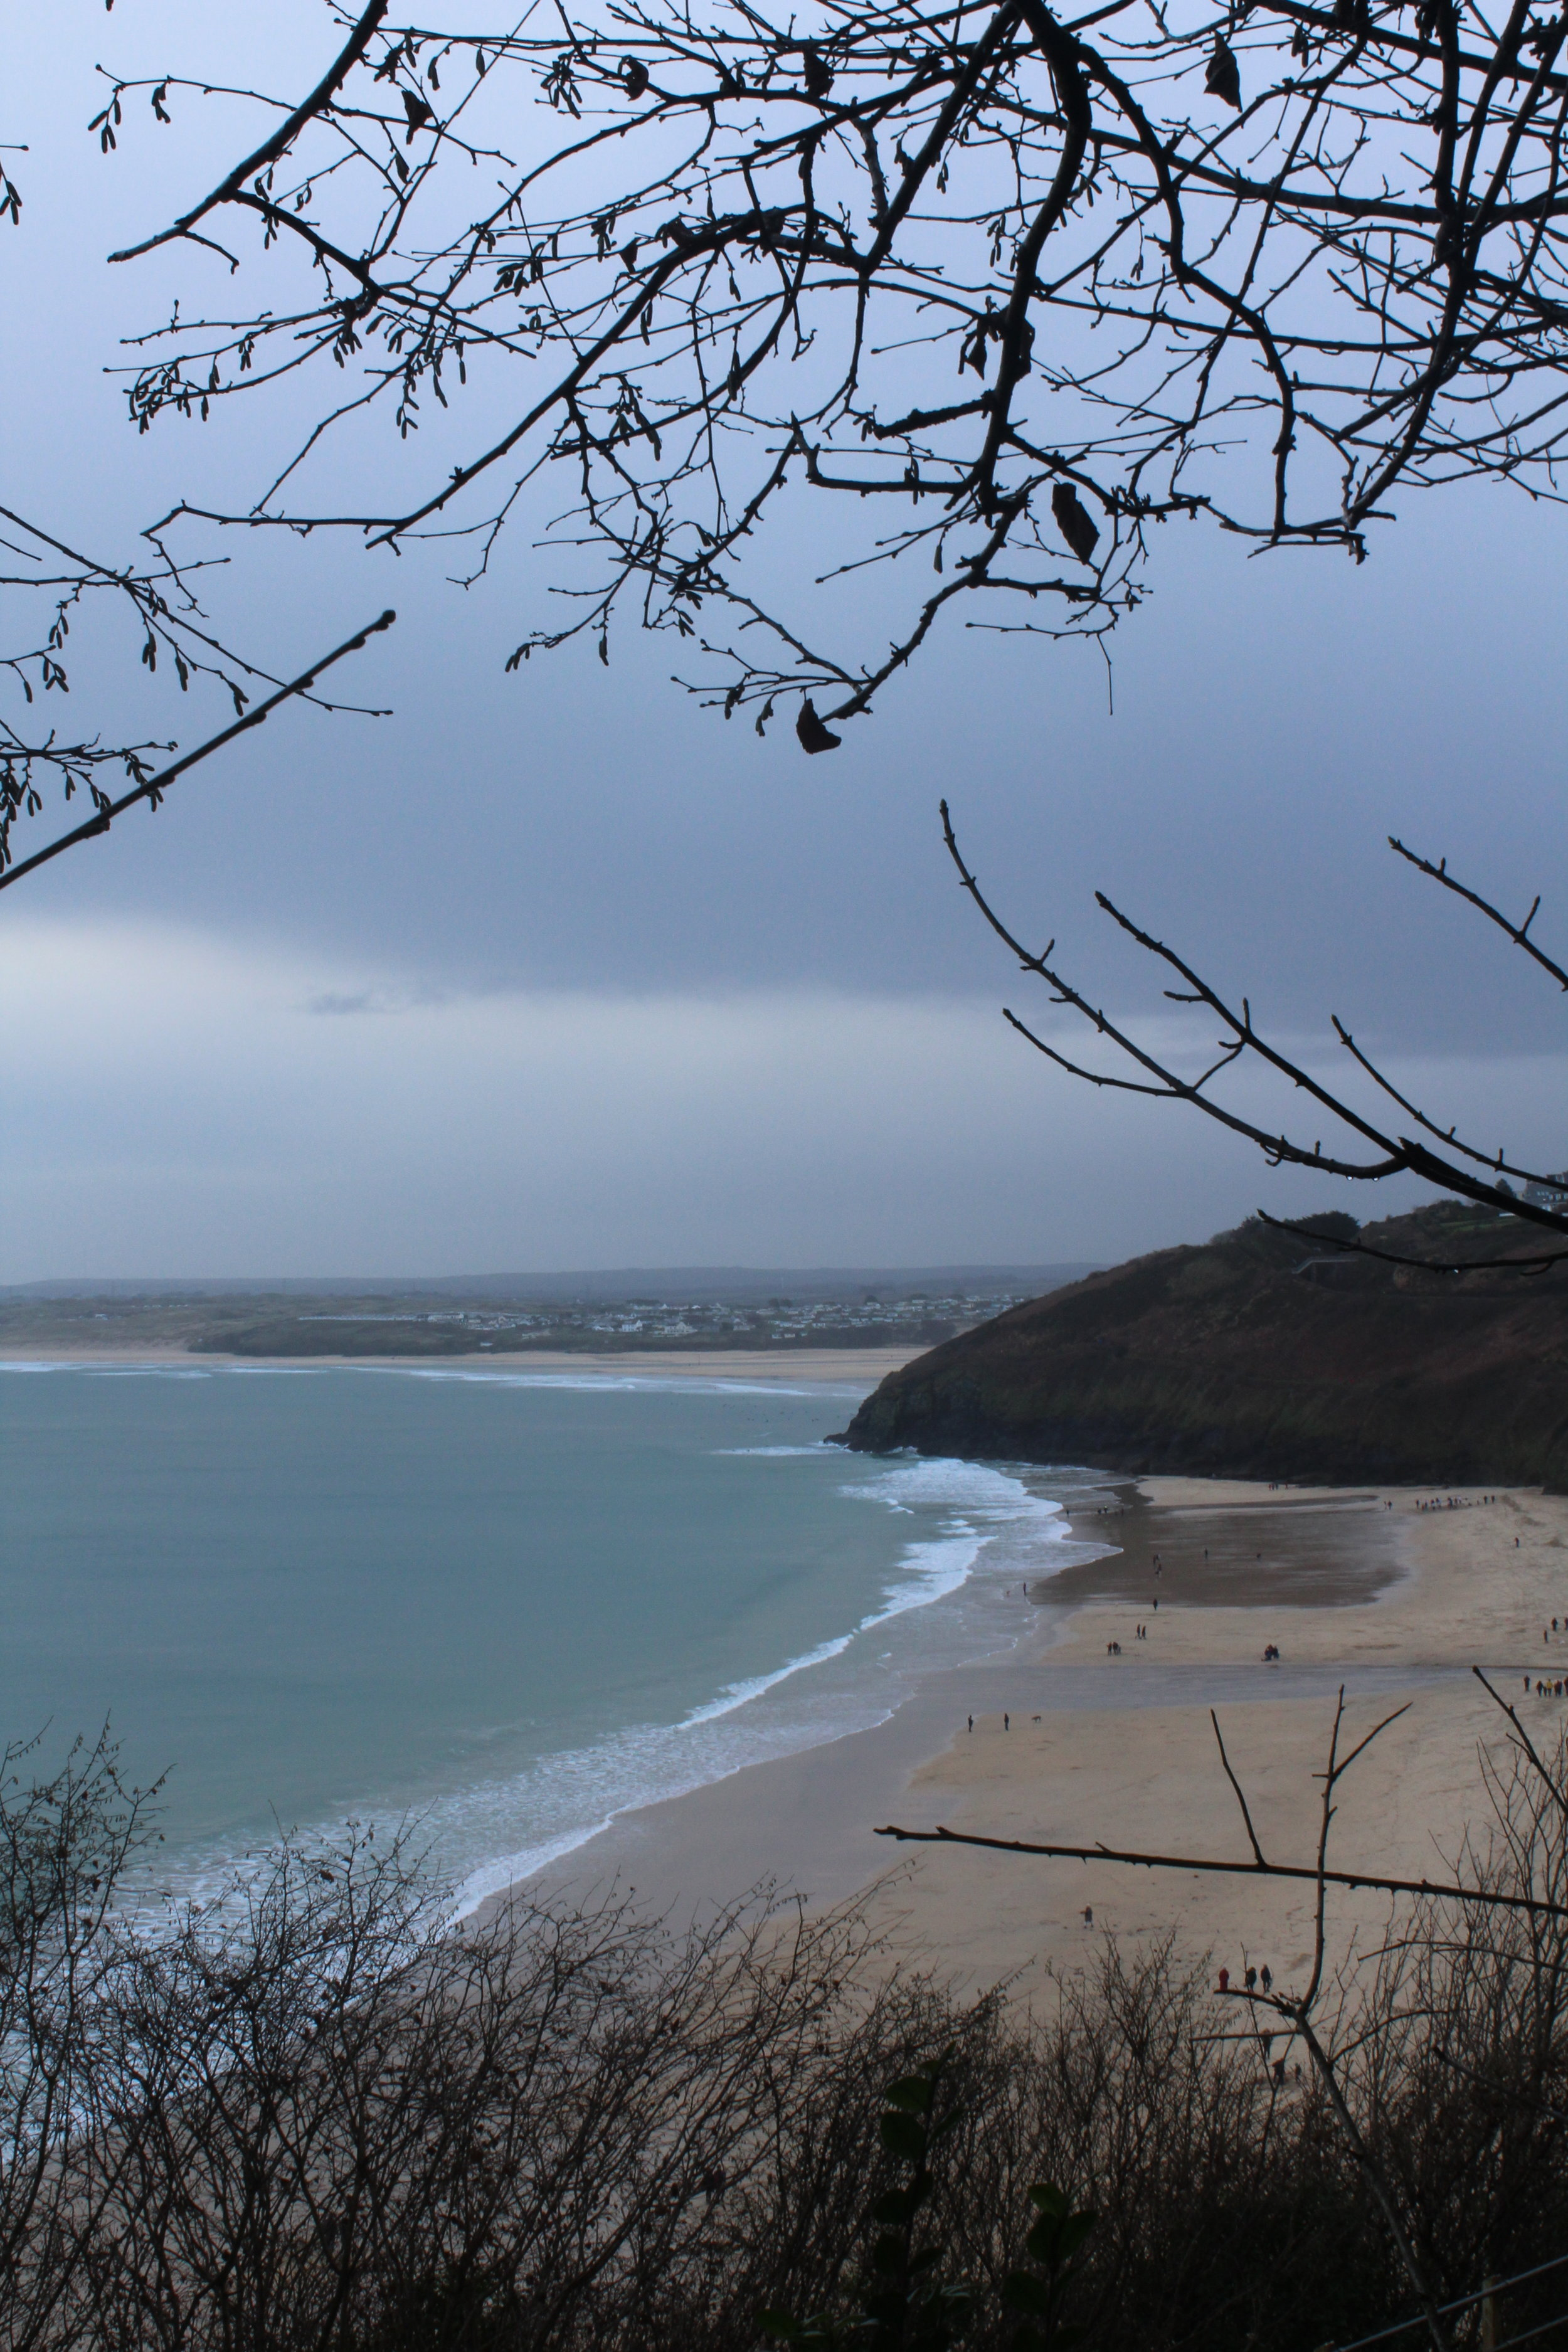 Even on a rainy day the light is beautiful. It always has a grey/ blue tint to it. This is the view of Carbis Bay beach from the walk into St Ives. This is a lovely twenty minute walk that takes under the railway and by some beautiful houses. It brings you out onto Porthminster beach where you could go for lunch at the wonderful Porthminster Café or grab a hot chocolate from one of the kiosks on the beach and drink it over looking the pale turquoise sea.